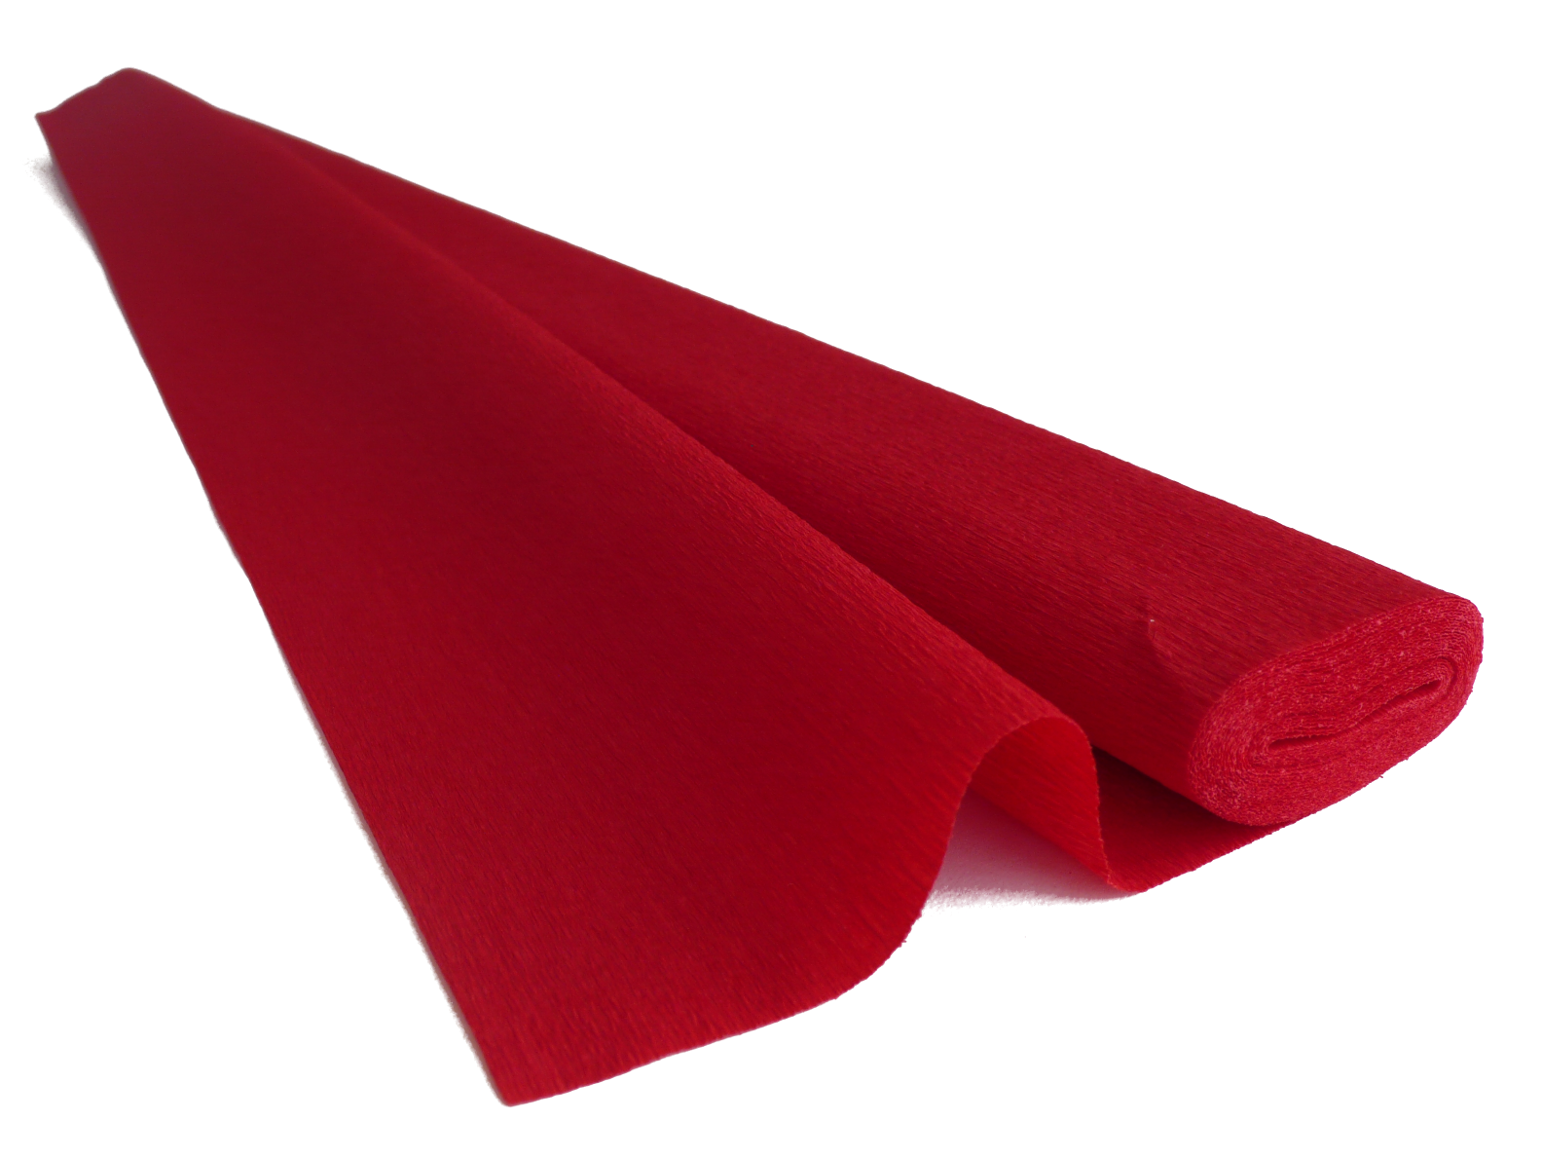 Italian Crepe Paper roll 60 gram - 312 VIVO RED